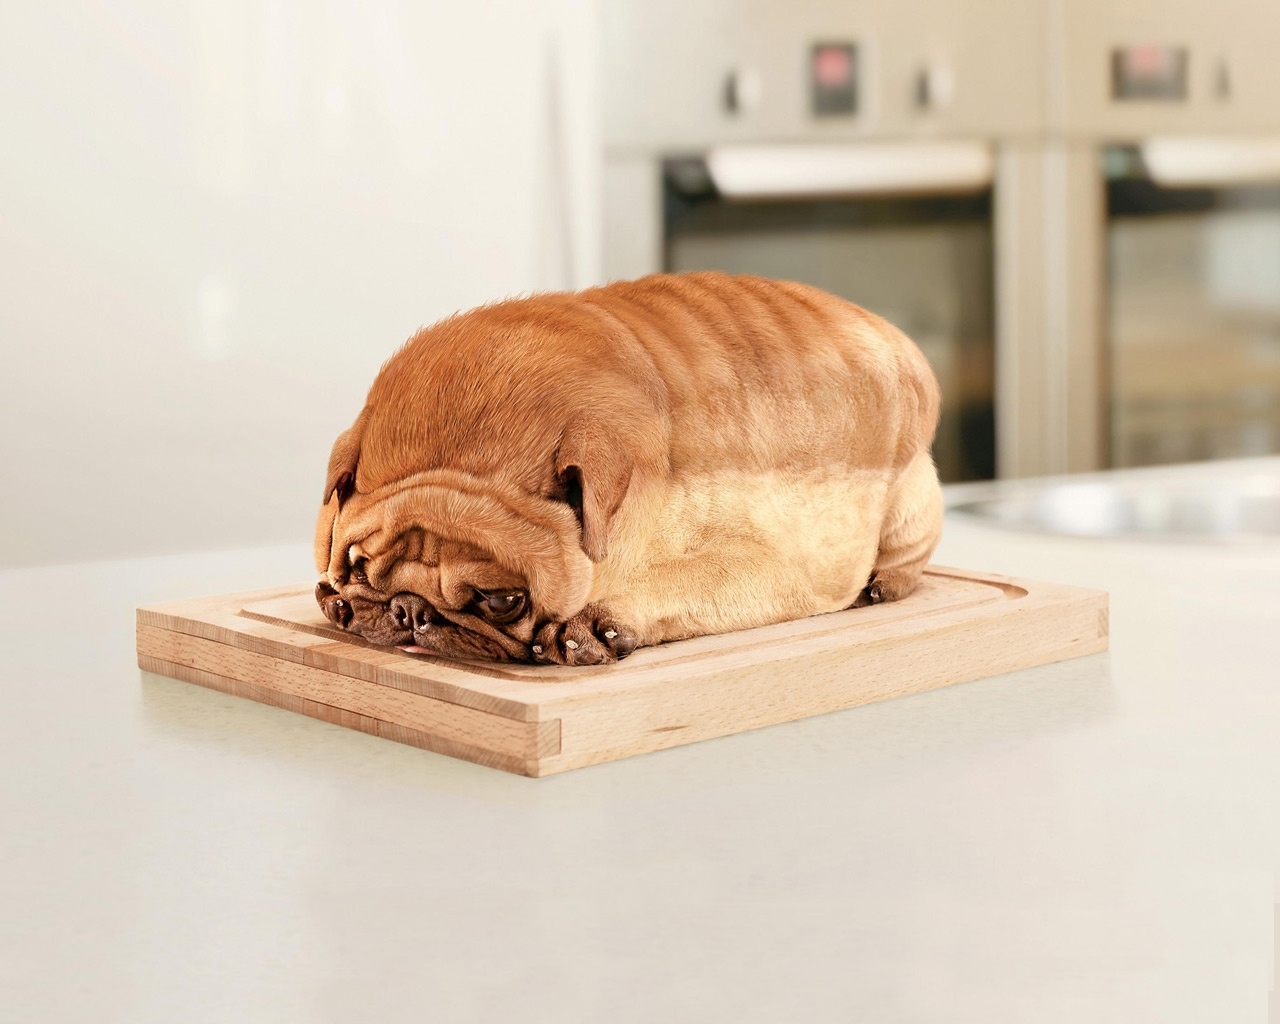 Funny_wallpapers_Dog_Bread_016838_.jpg